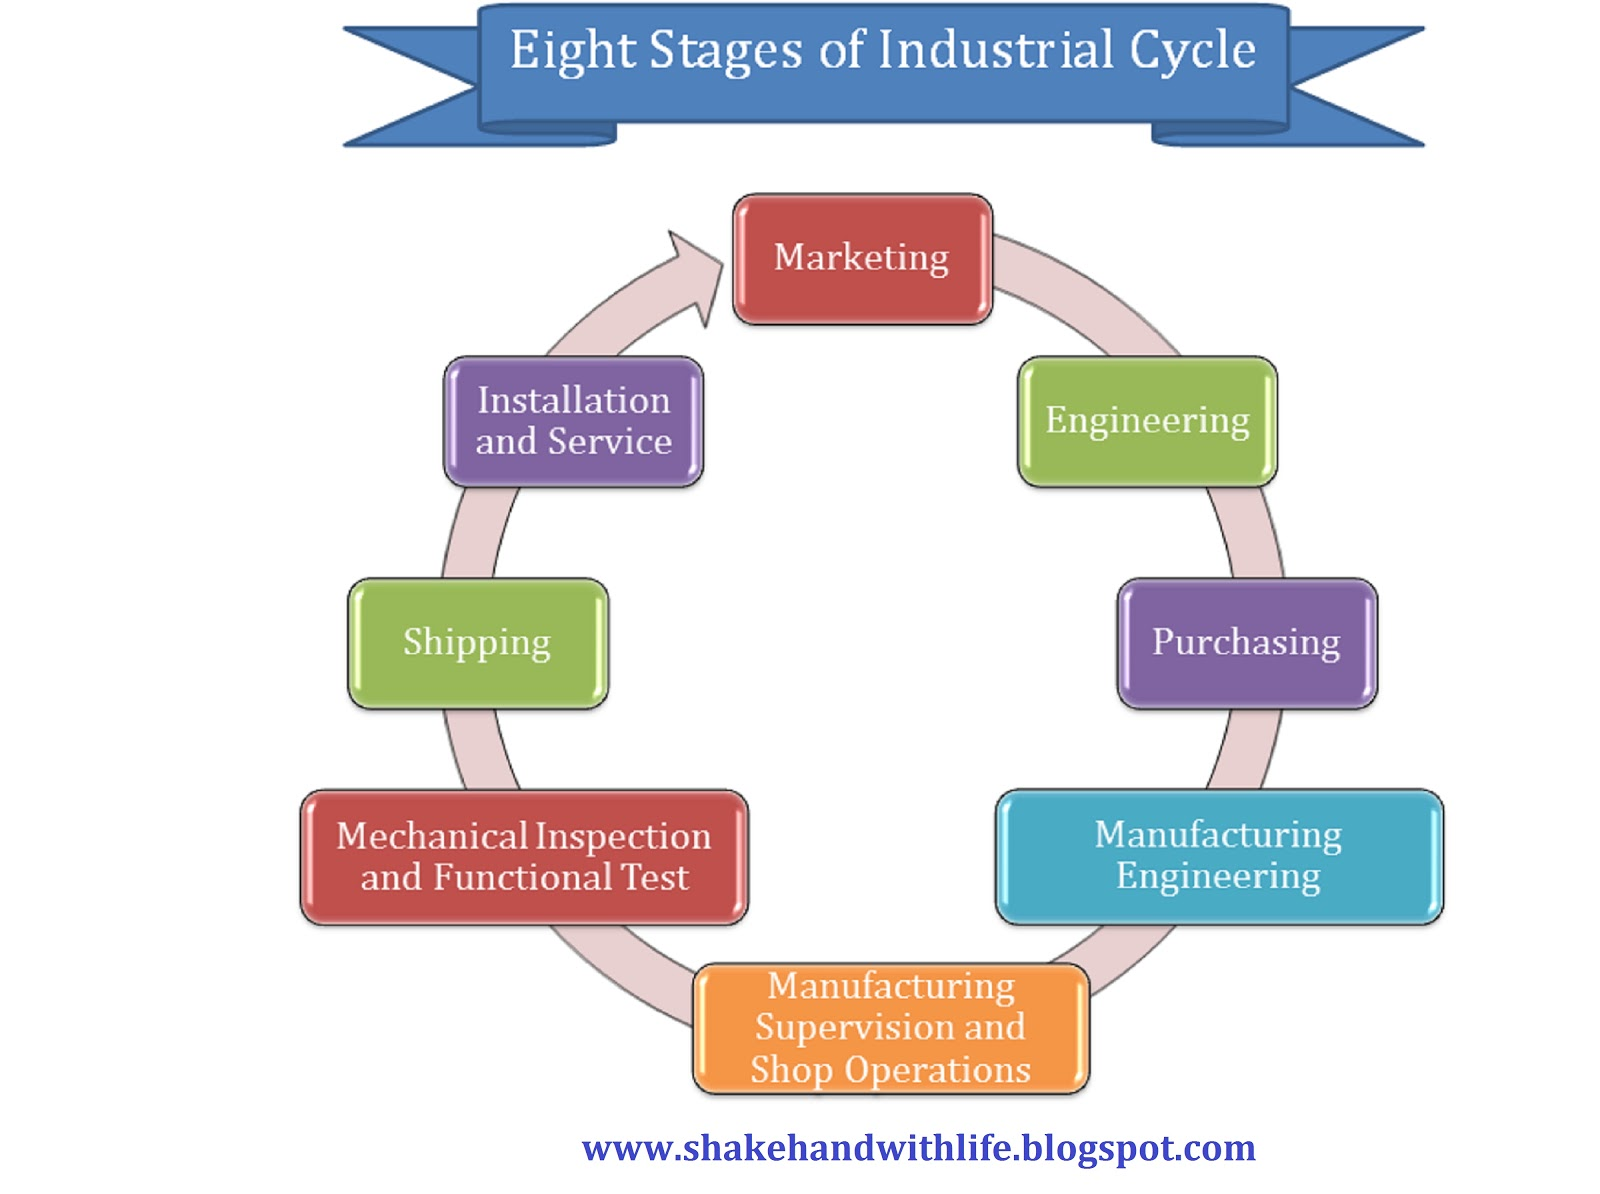 electronics industry life cycle stages The terms product life cycle, industry life cycle, and business life cycle refer to the four stages of introduction, growth, maturity, and decline to simplify the discussion, the focus will be on the product life cycle with indication as to where the industry and business life cycles differ in important ways.